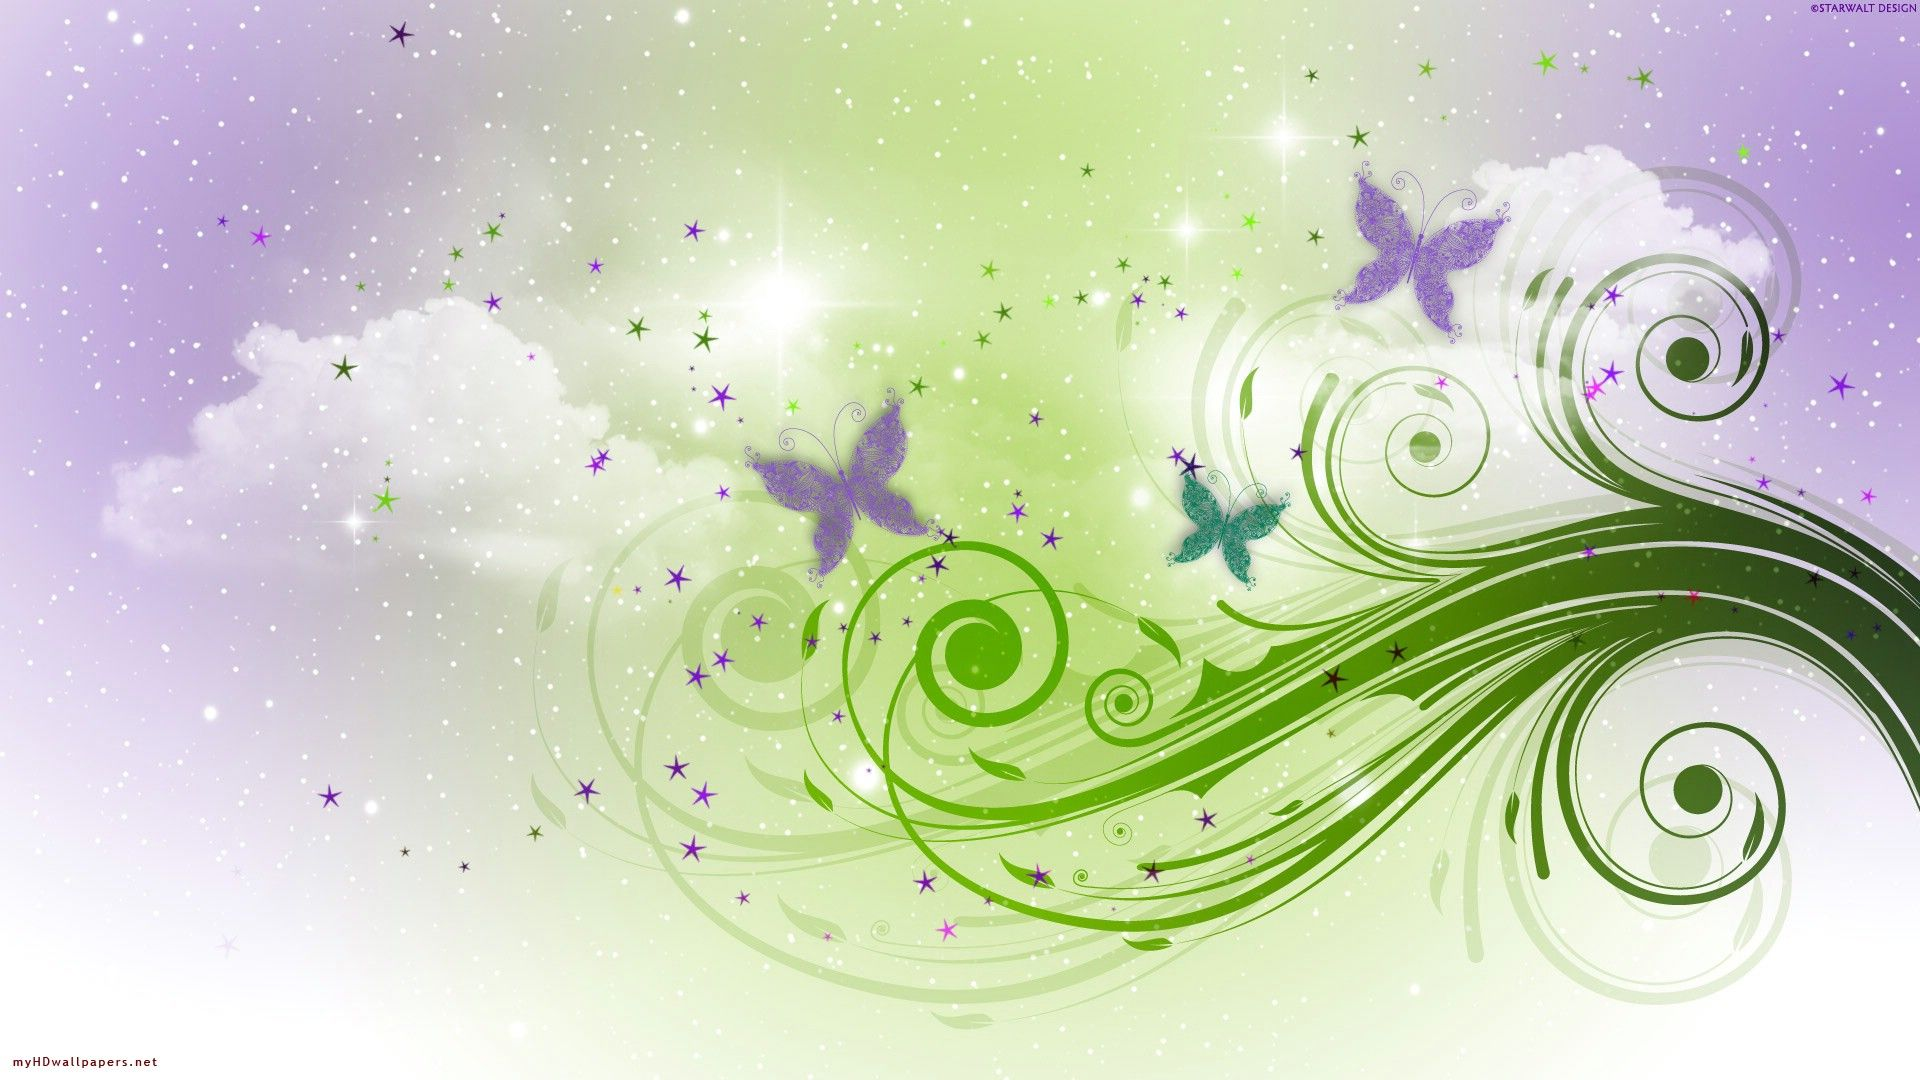 Butterfly-vector-design-1920x1080.jpg (1920×1080) | BACKGROUND ...